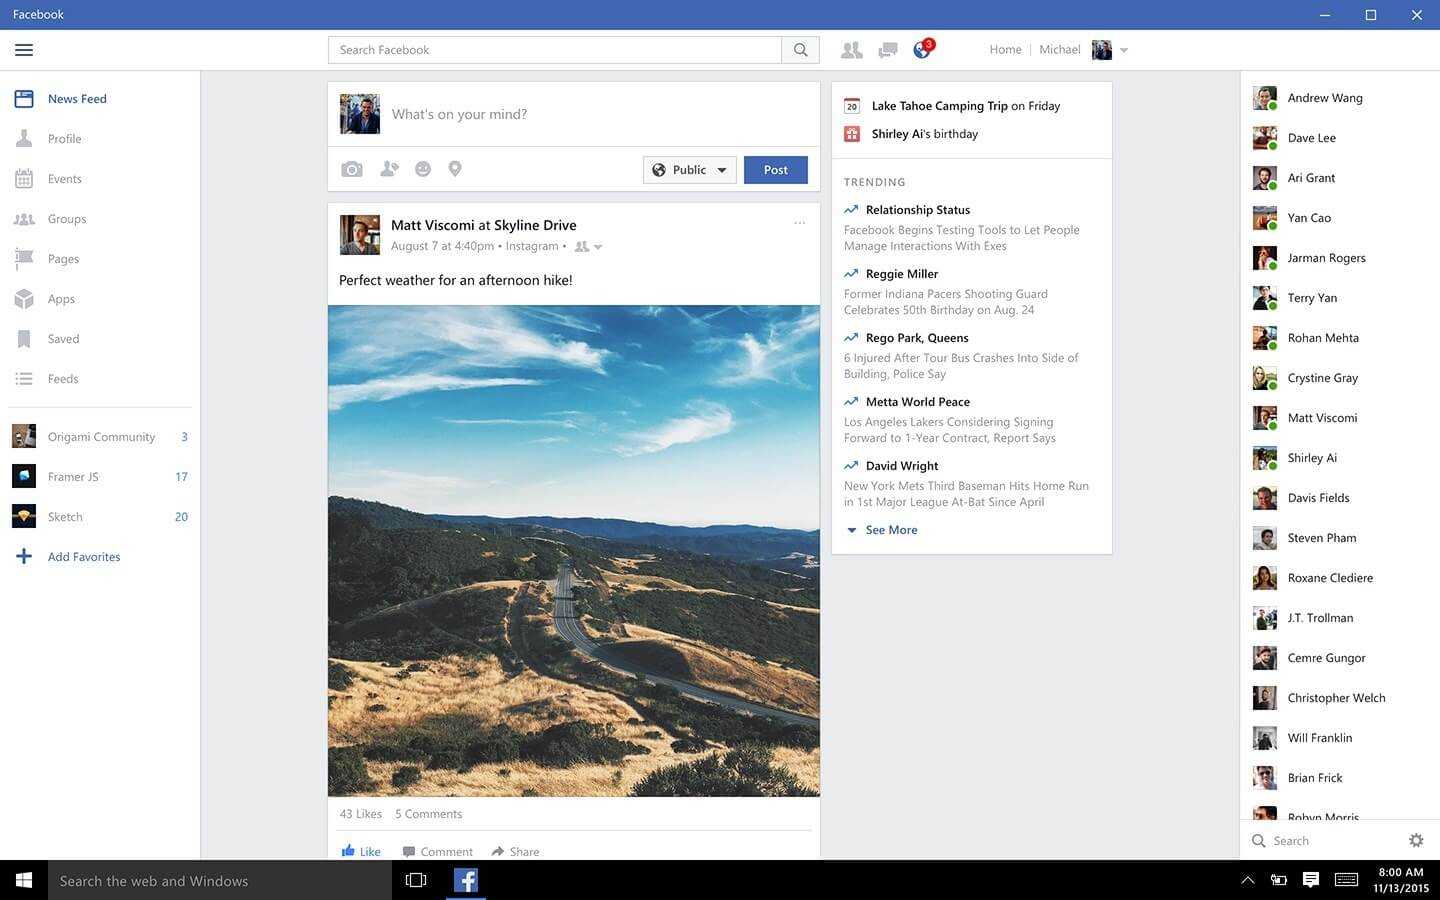 Facebook app updated for Windows 10